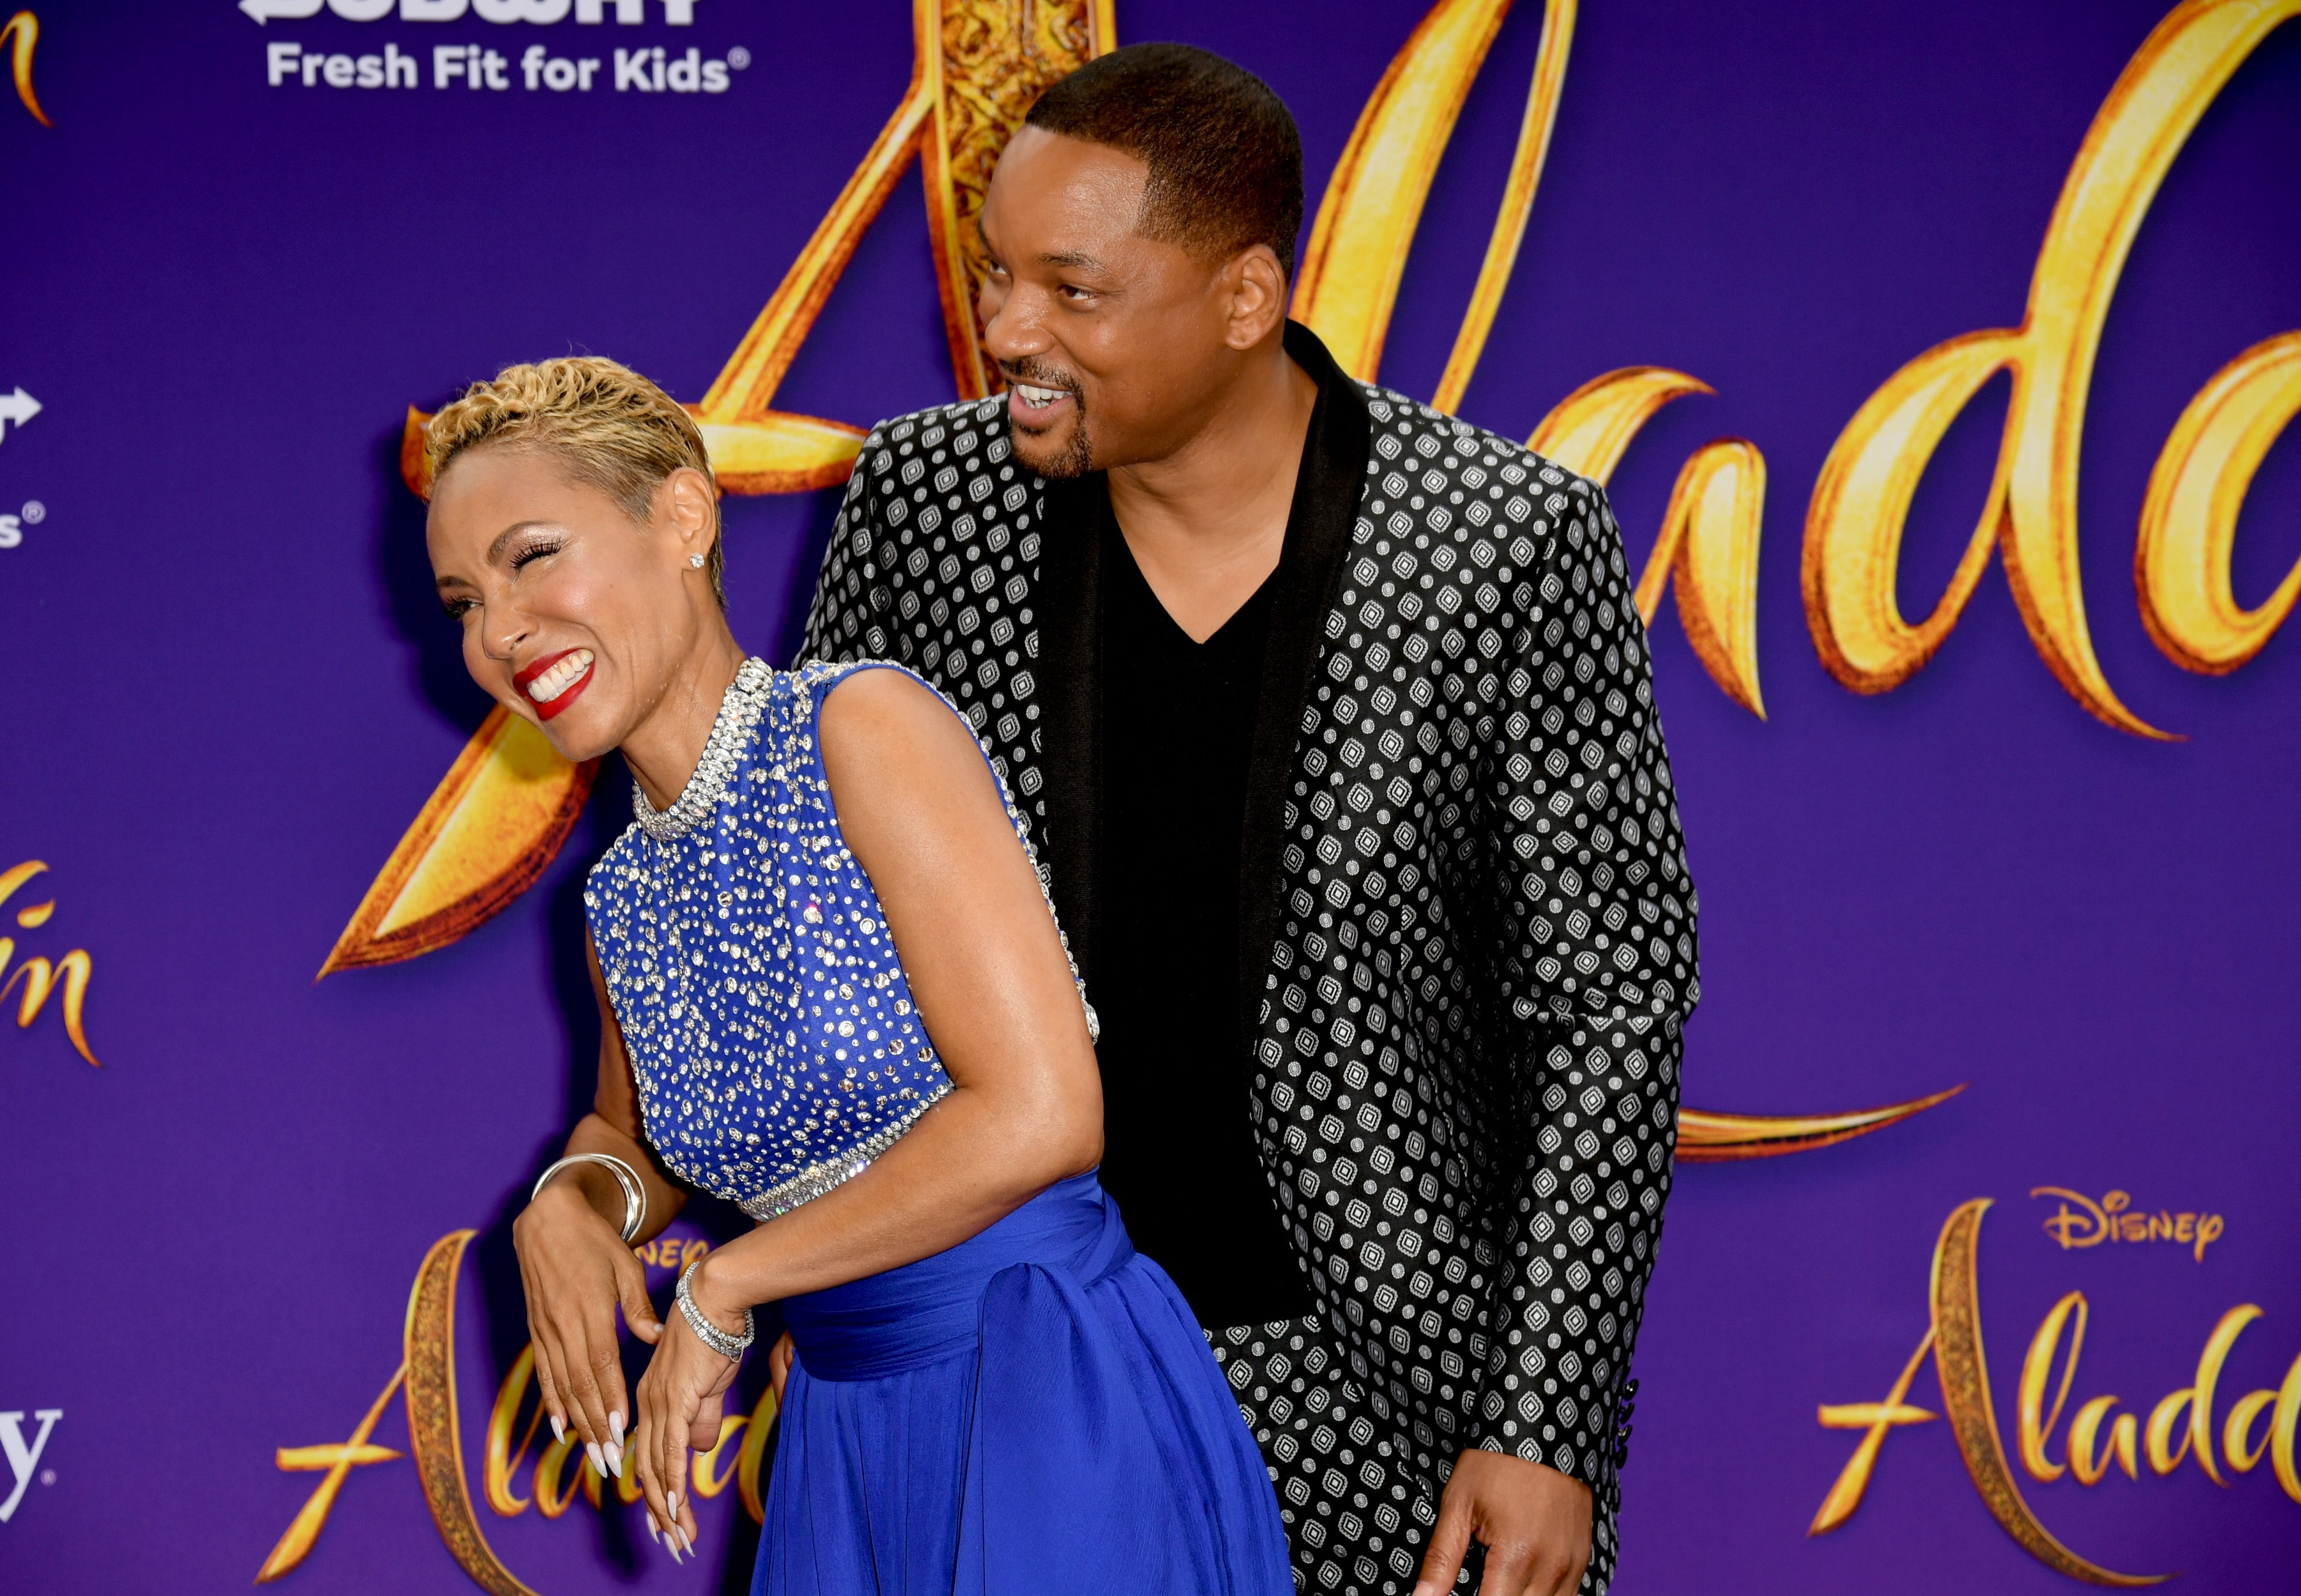 How do you put up with Will? : Jada Pinkett Smith looks back on marriage for 50th birthday